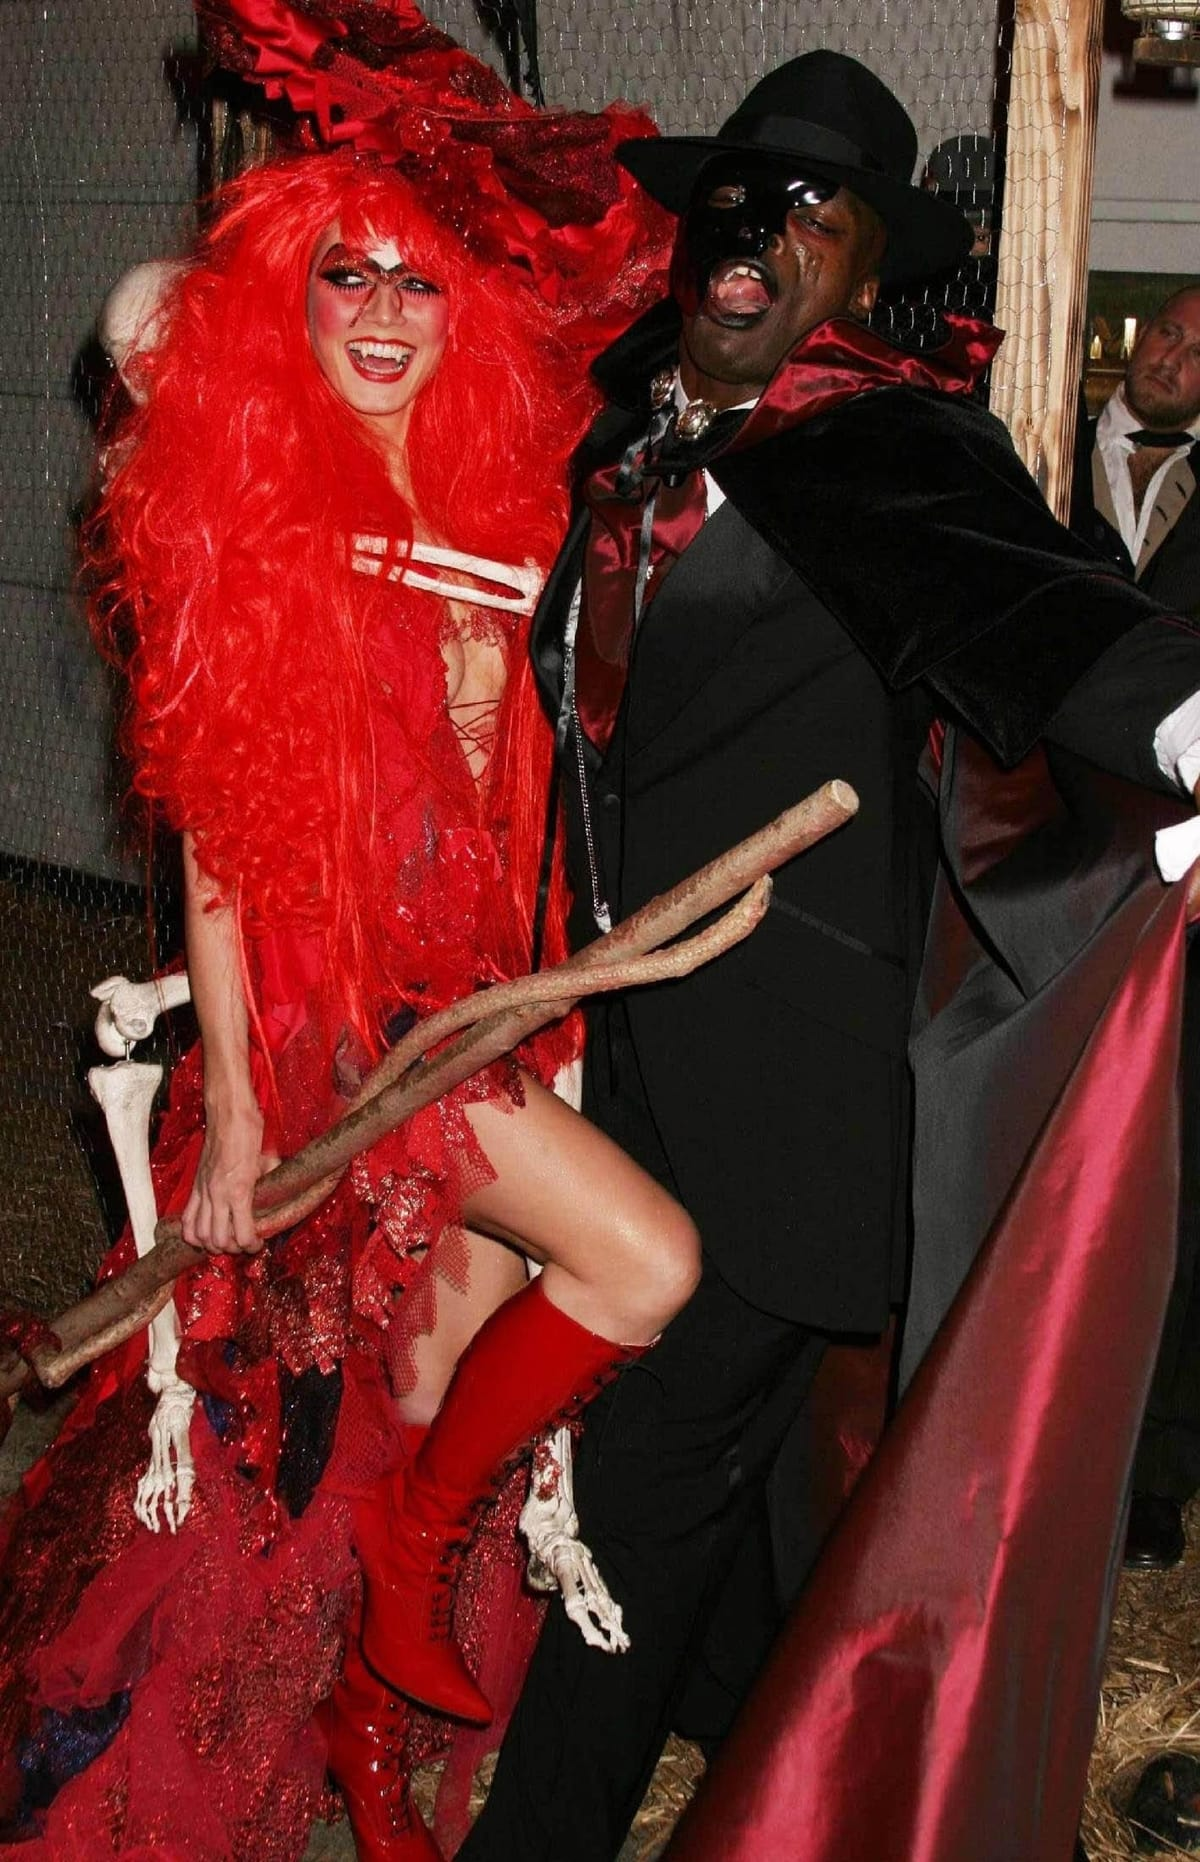 Heidi Klum as a red witch and Seal as the Phantom from The Phantom of the Opera attend her 5th Annual Halloween party